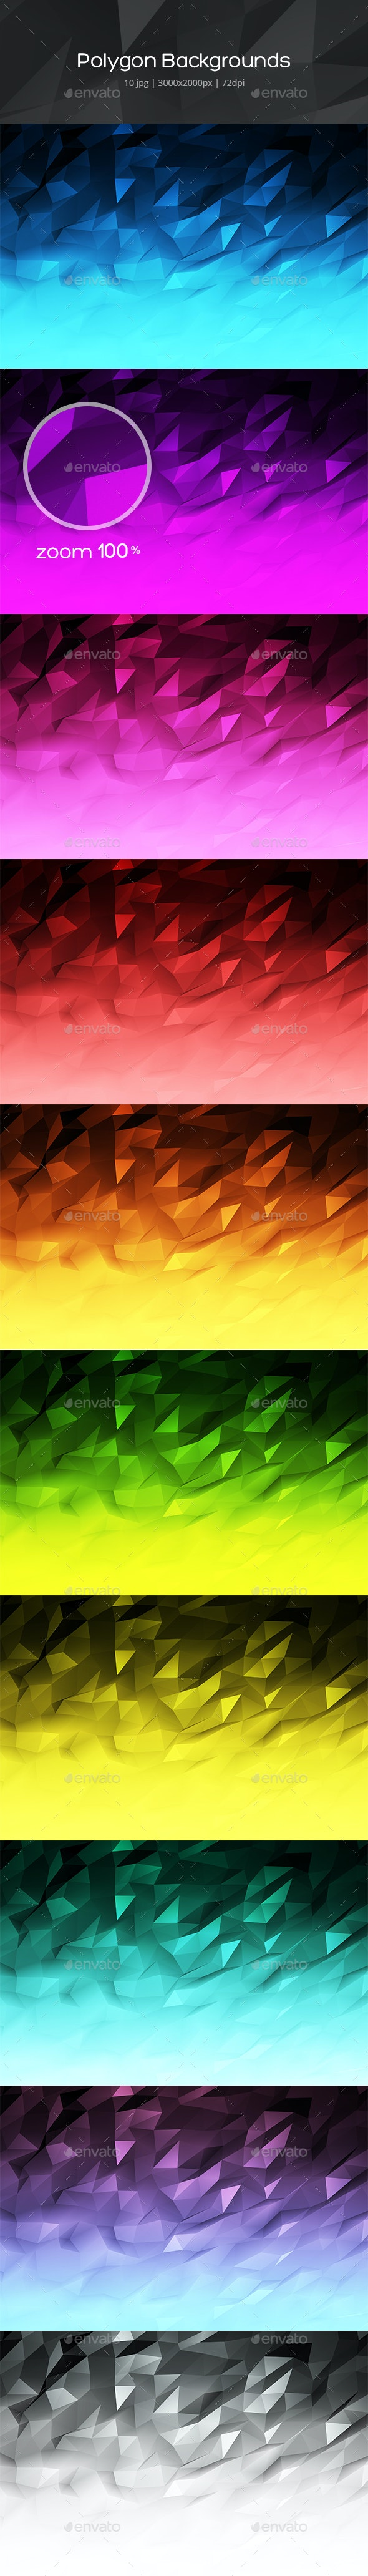 Polygon Backgrounds - Backgrounds Graphics